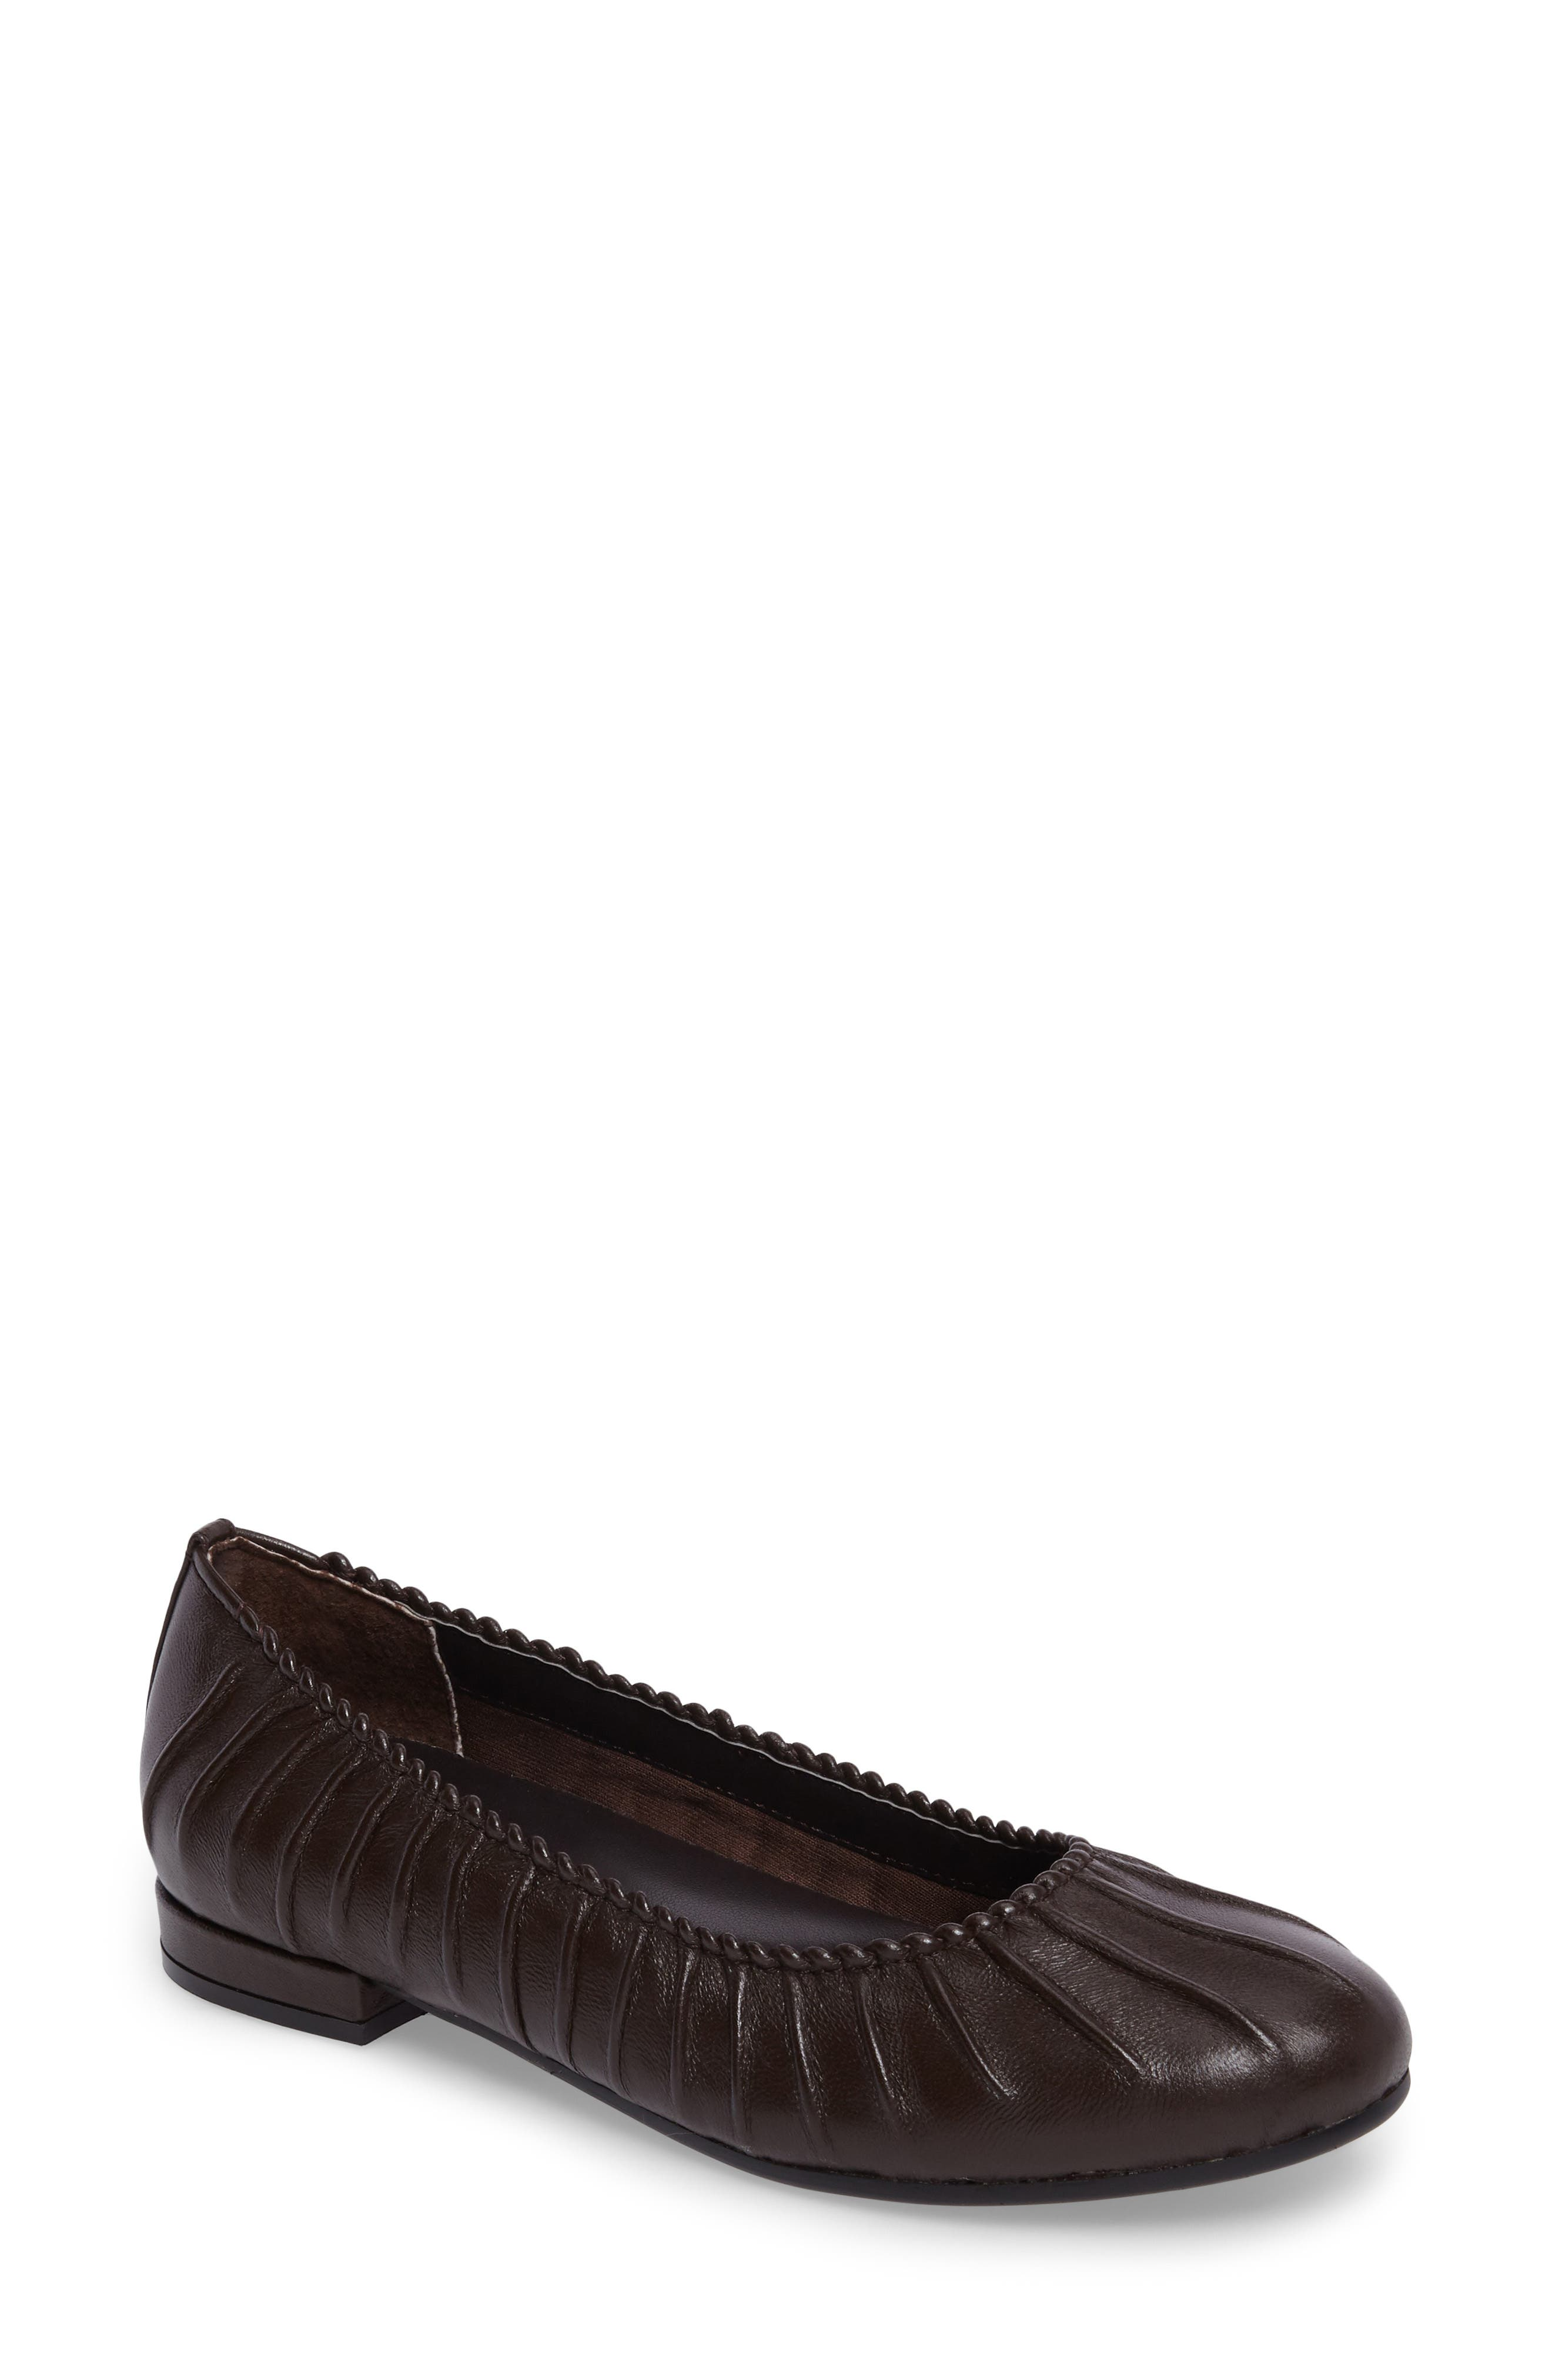 Santo Flat,                         Main,                         color, Brown Leather